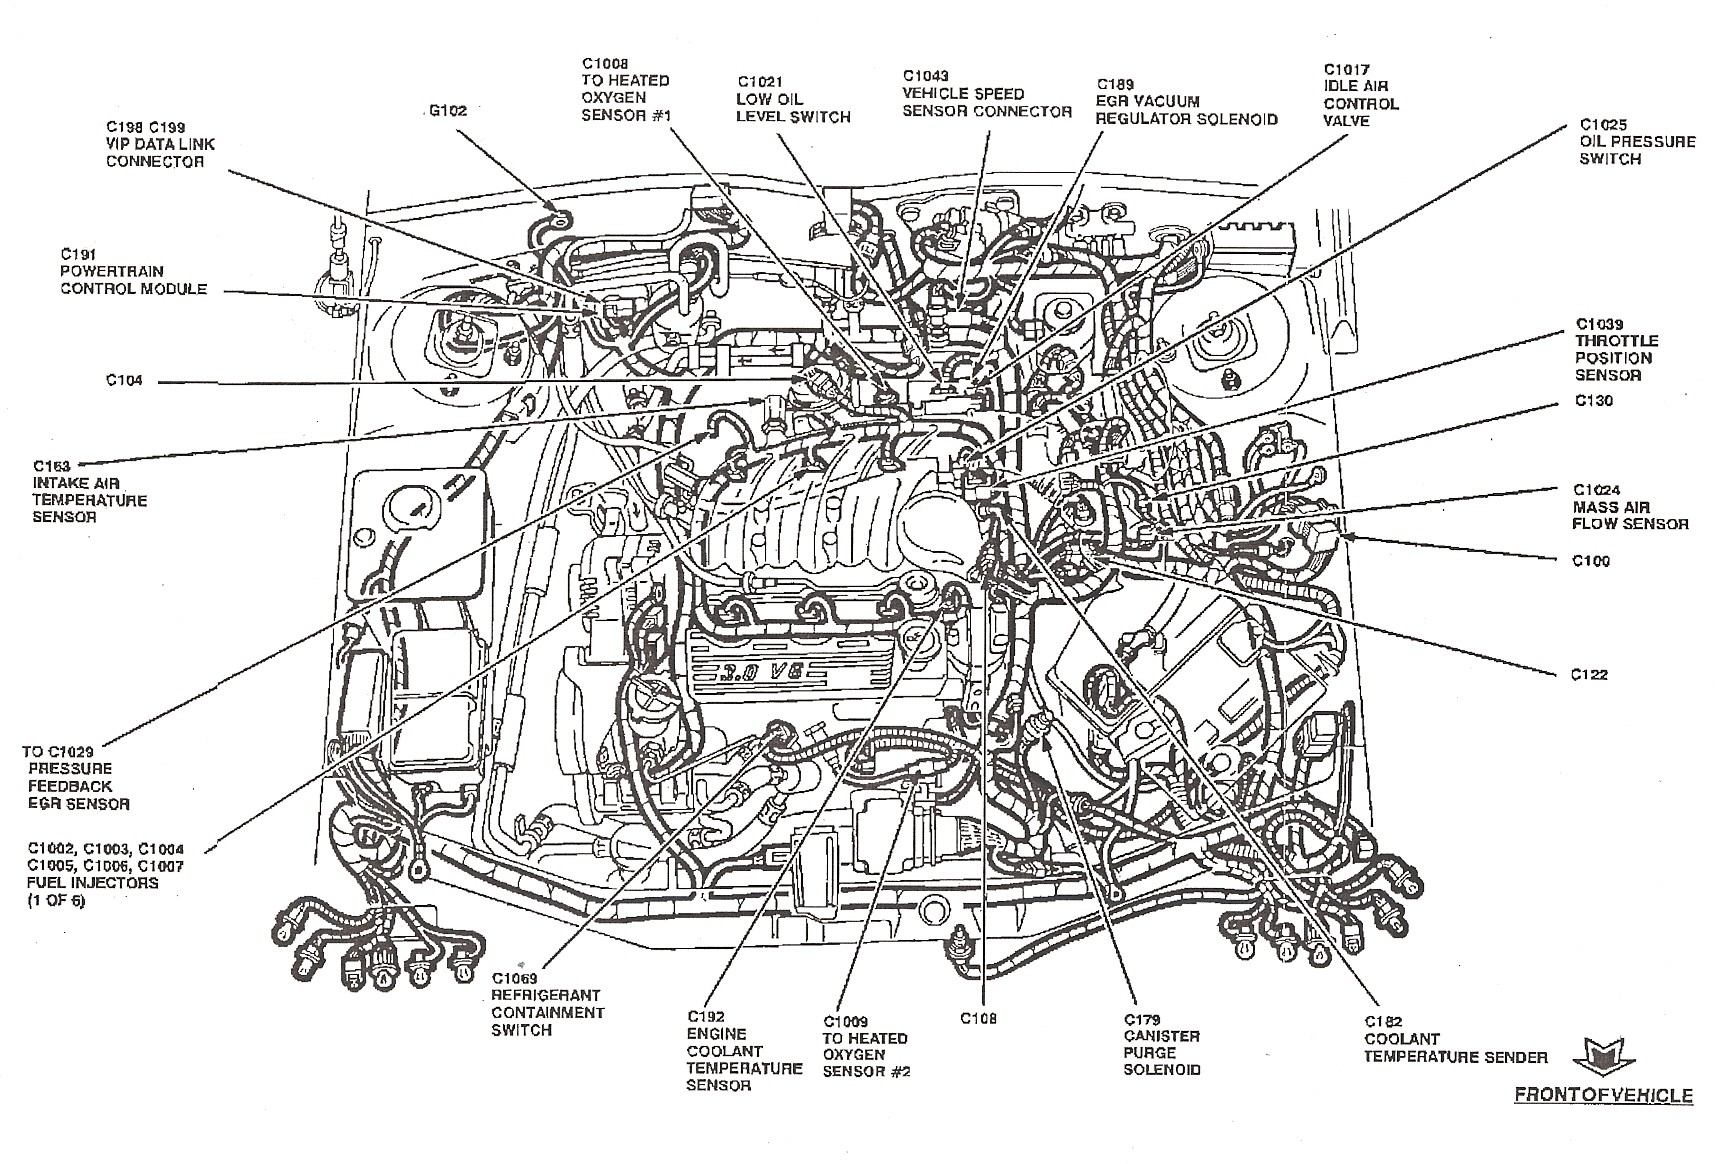 m50 engine diagram auto electrical wiring diagram 2002 bmw 325i engine  diagram bmw 2001 engine compartment